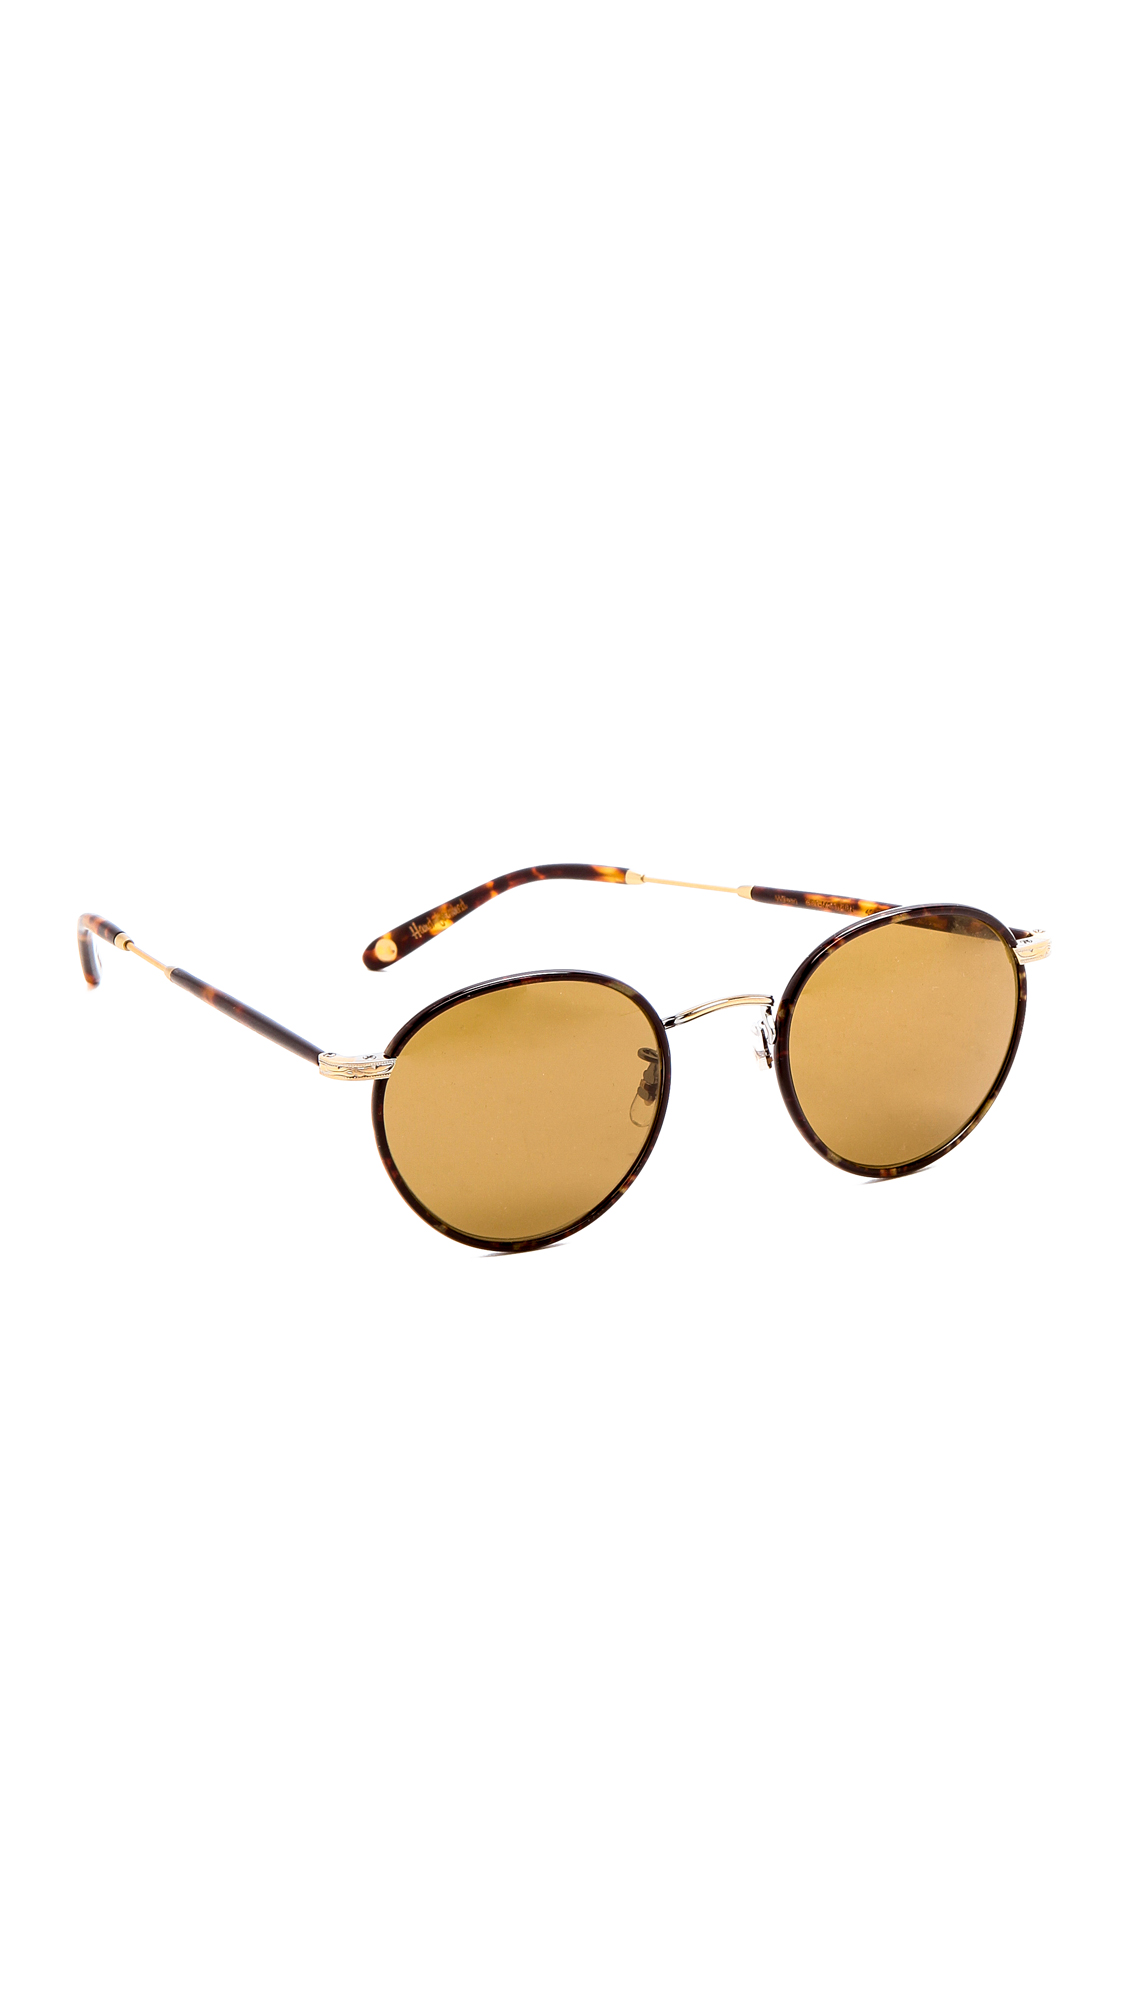 GARRETT LEIGHT Wilson Sunglasses - Bourbon Tortoise/Pure Brown